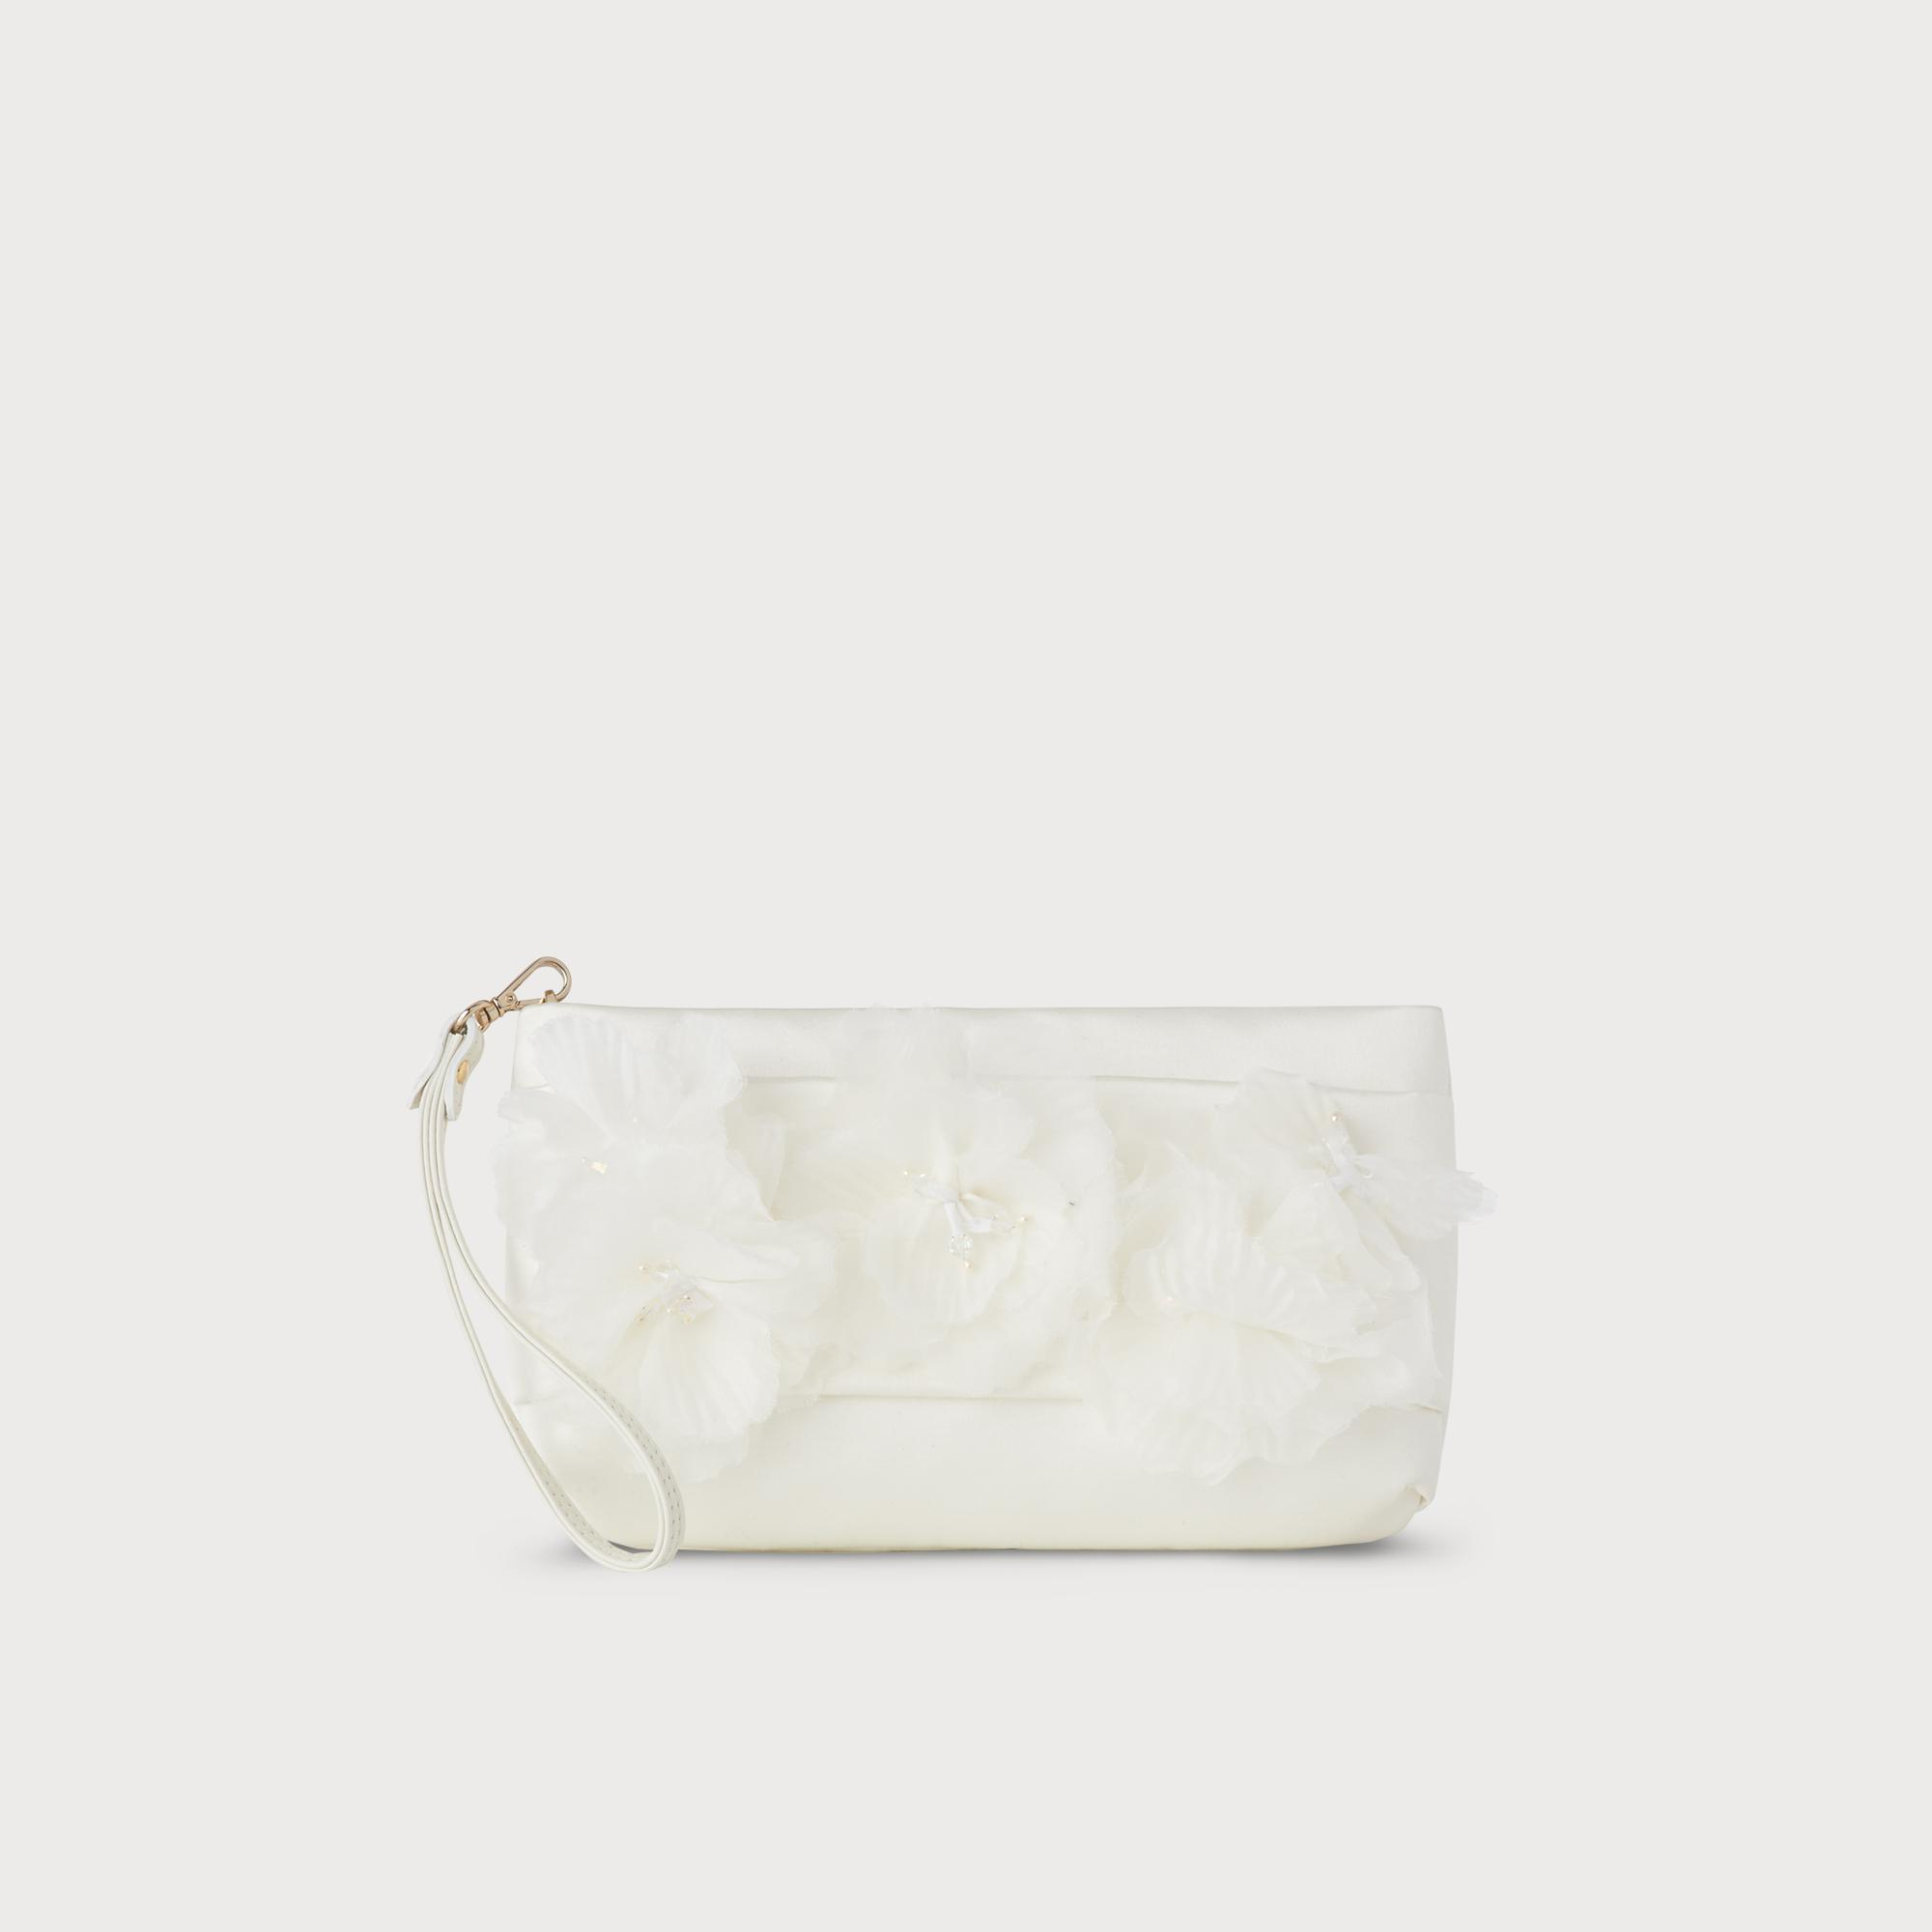 Beatrice Ivory Satin Clutch Bag